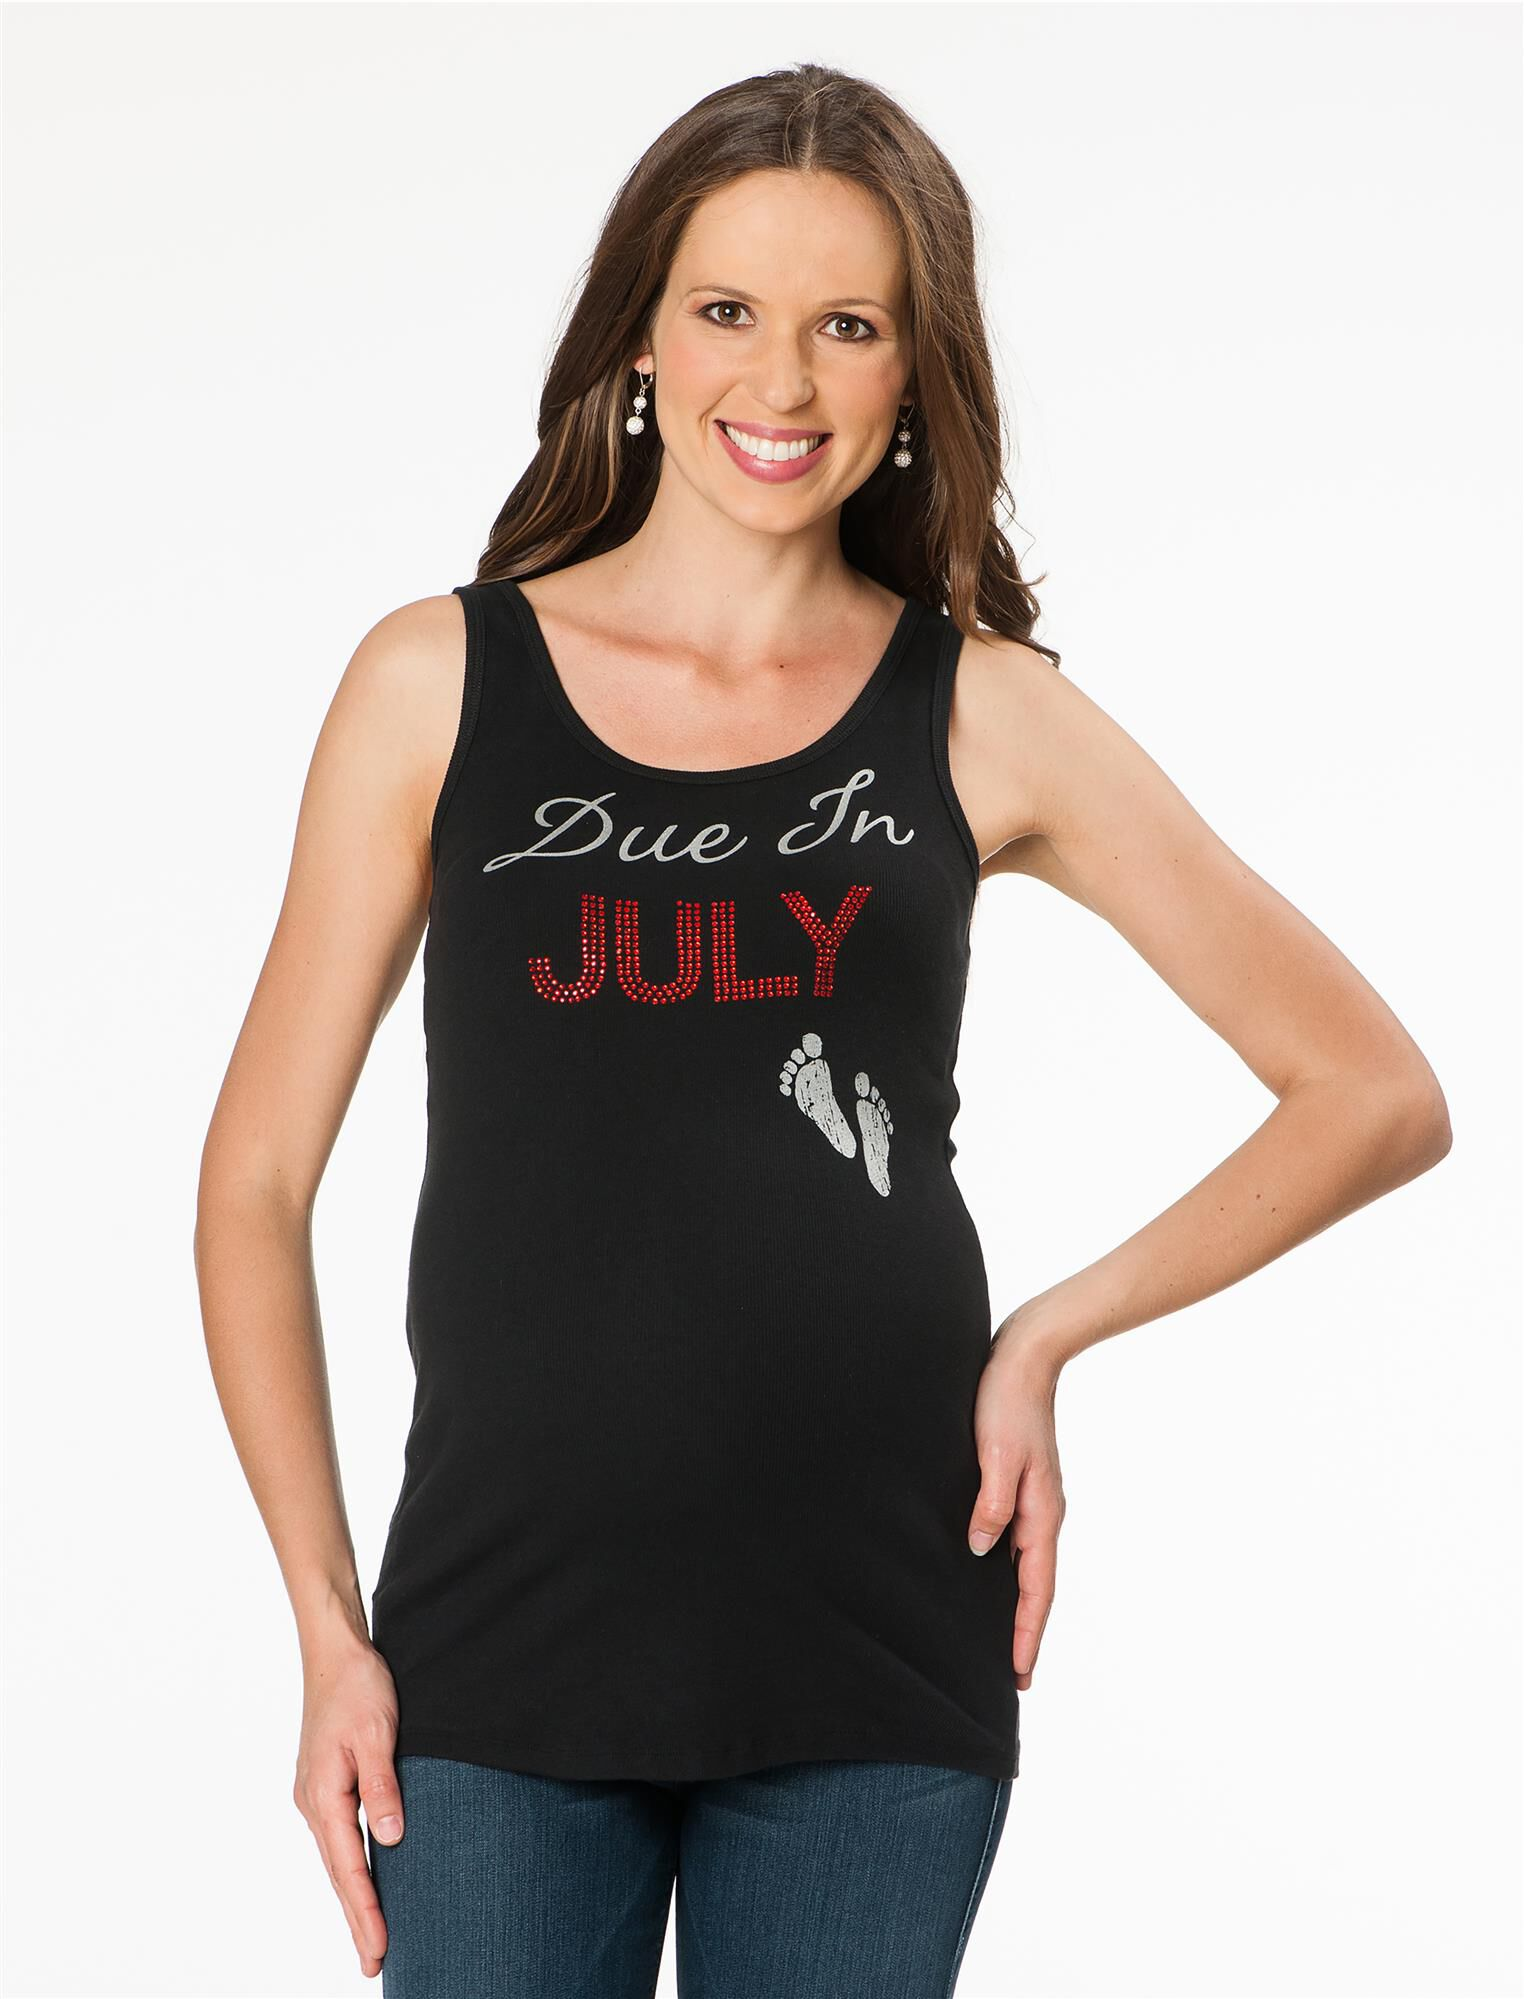 Due In July Maternity Tank Top